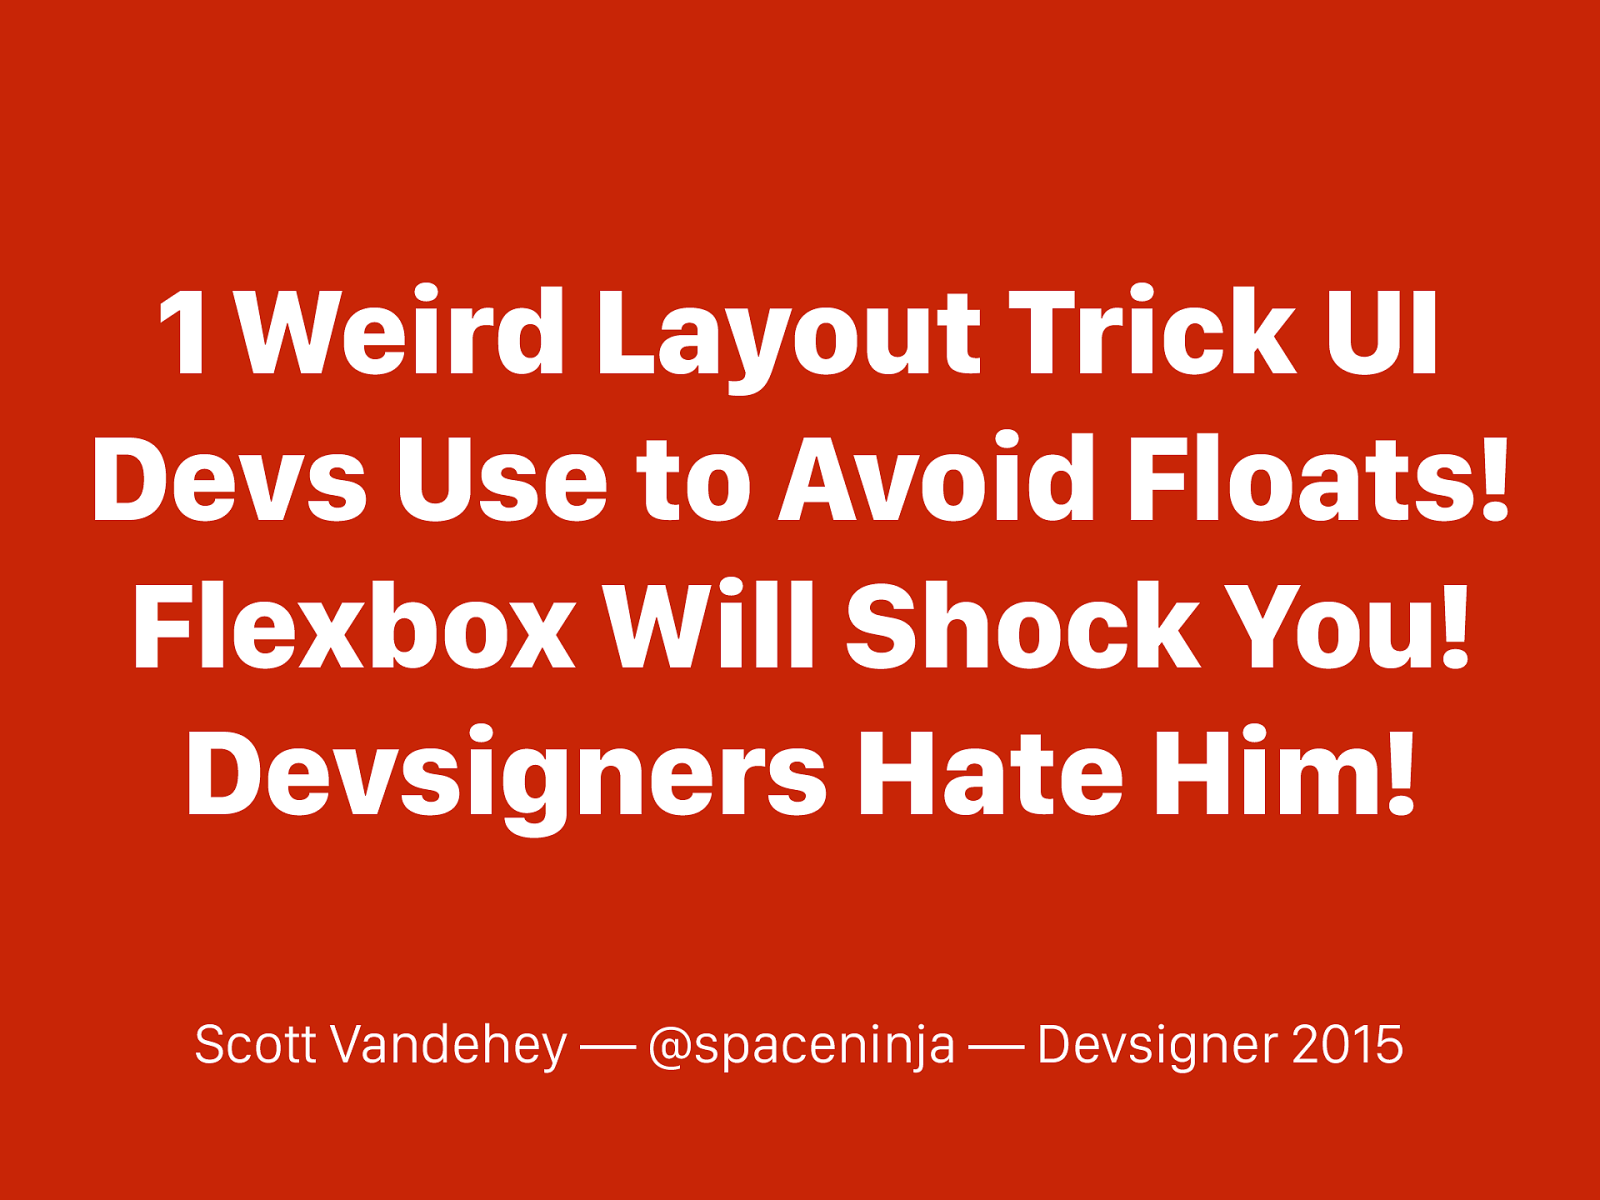 Flexbox Will Shock You!